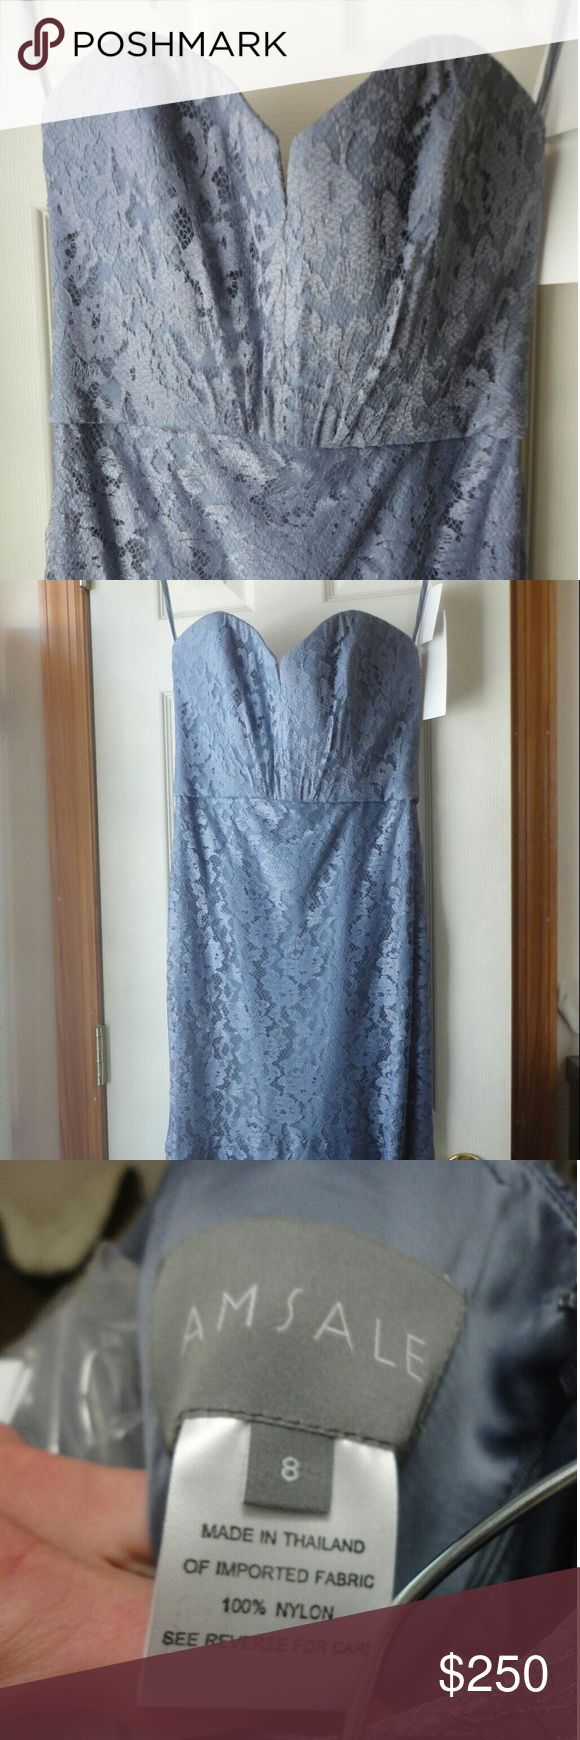 Amsale G962L 8xl Extra length, Brand new with tags, never worn, never altered Amsale  Dresses Wedding